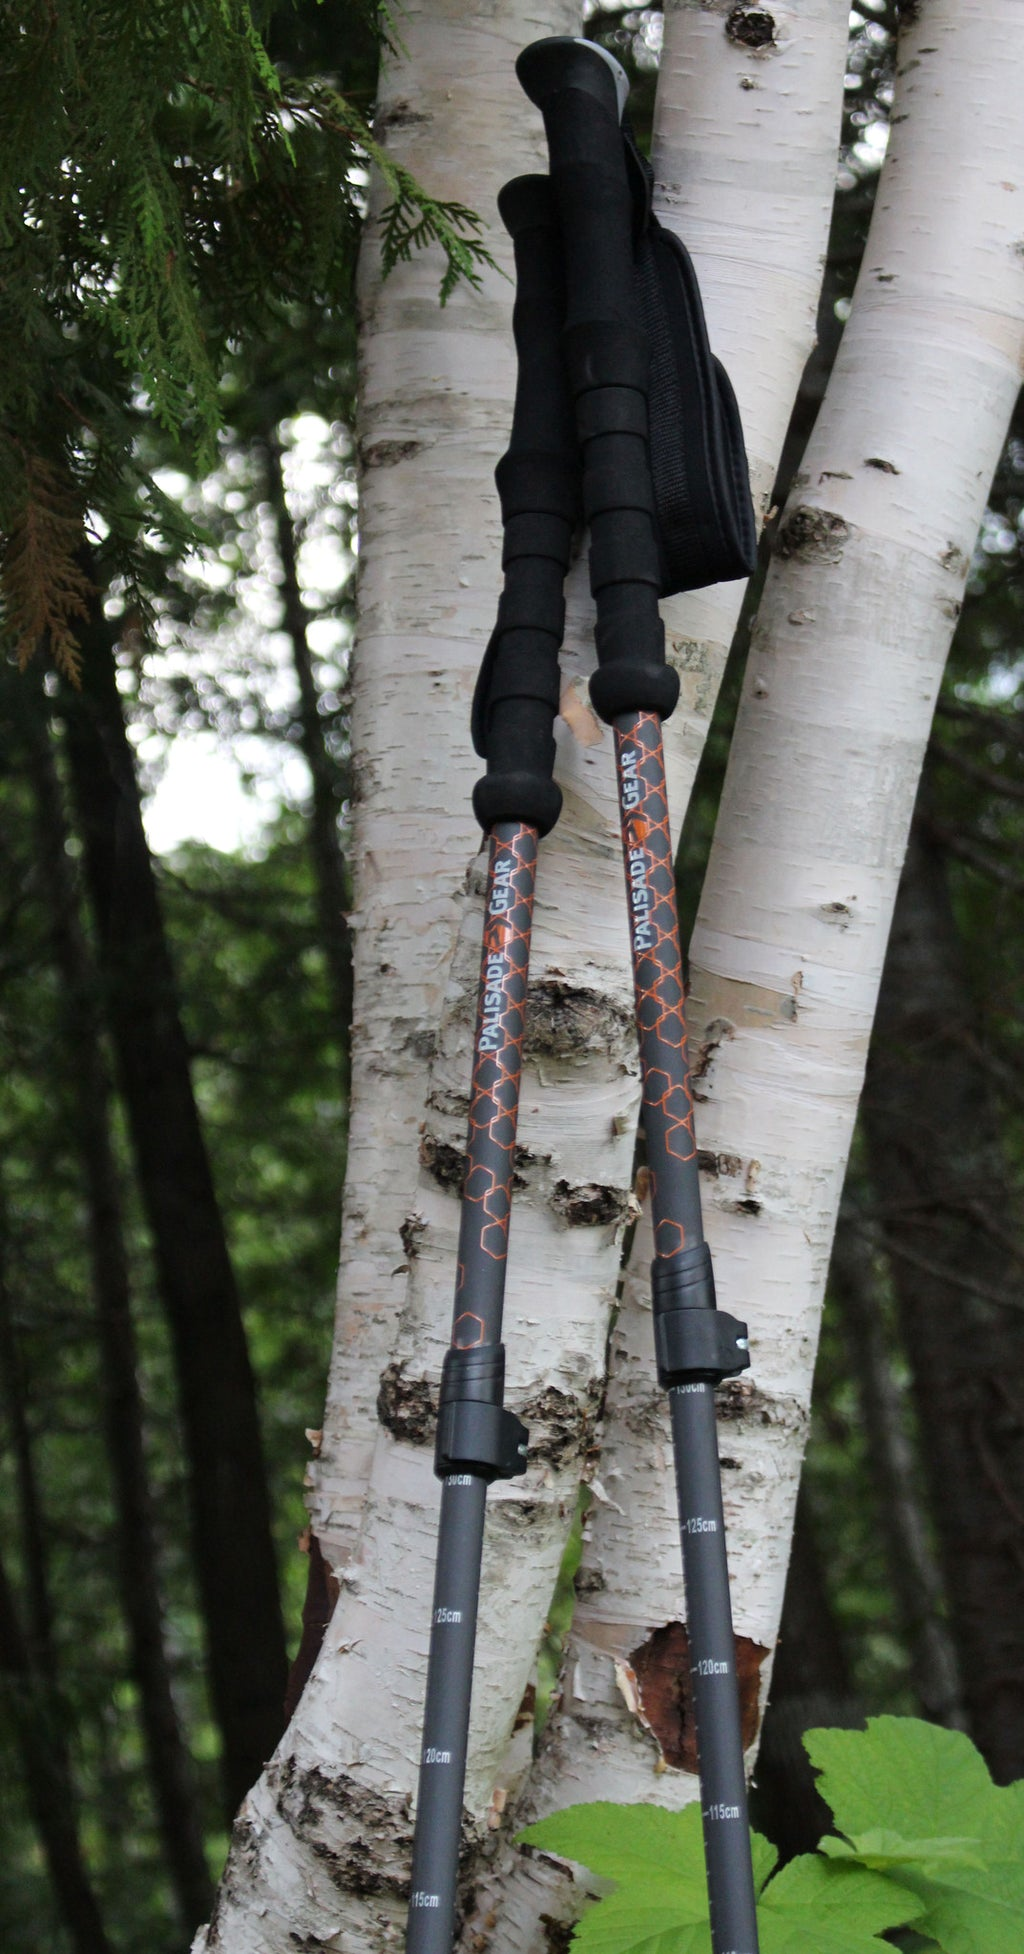 Ultra Light 100% Carbon Trekking Poles with Flip Lock Quick Adjust and Comfort Grips